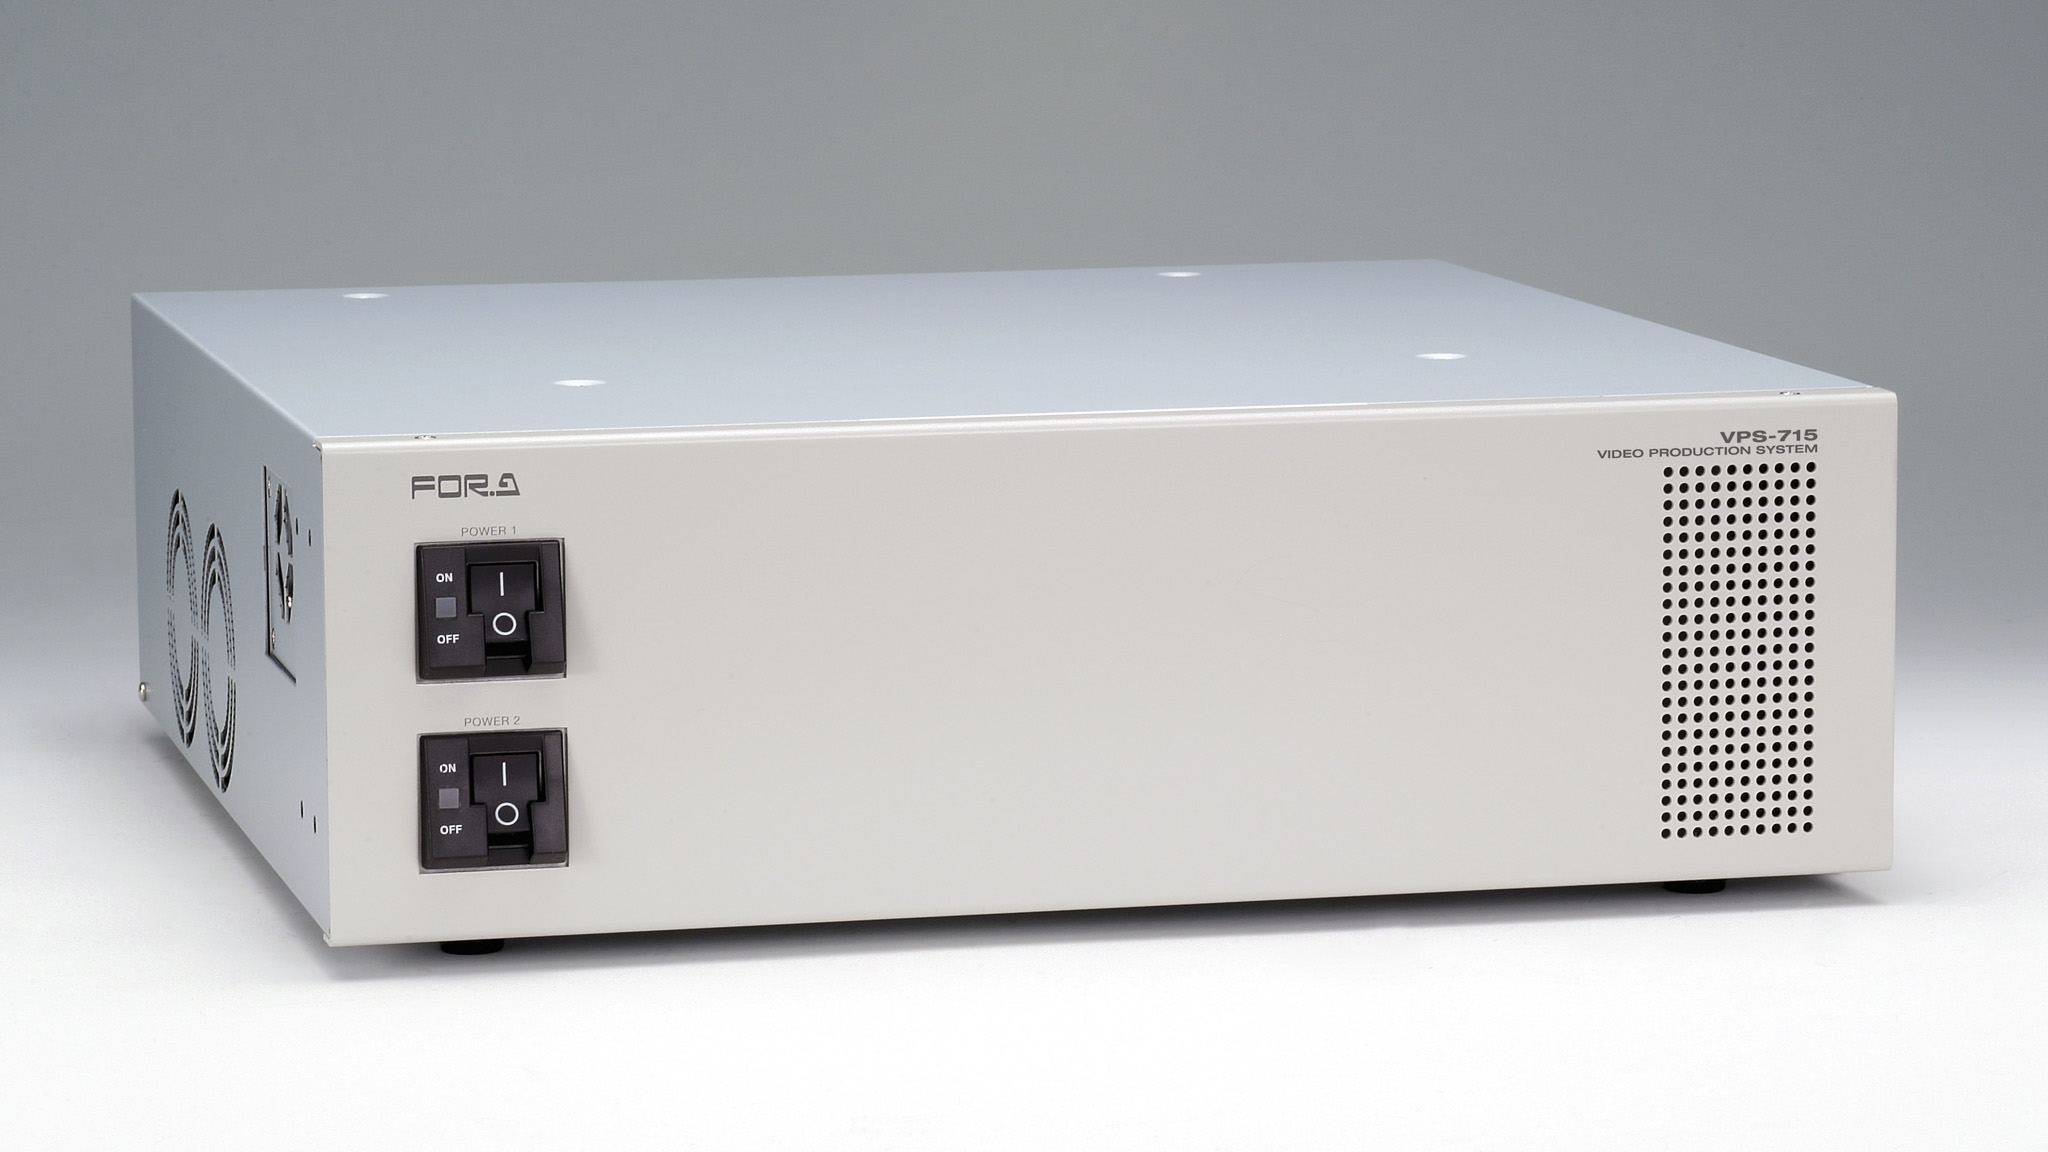 VPS-715 - PRODUCTS - FOR-A